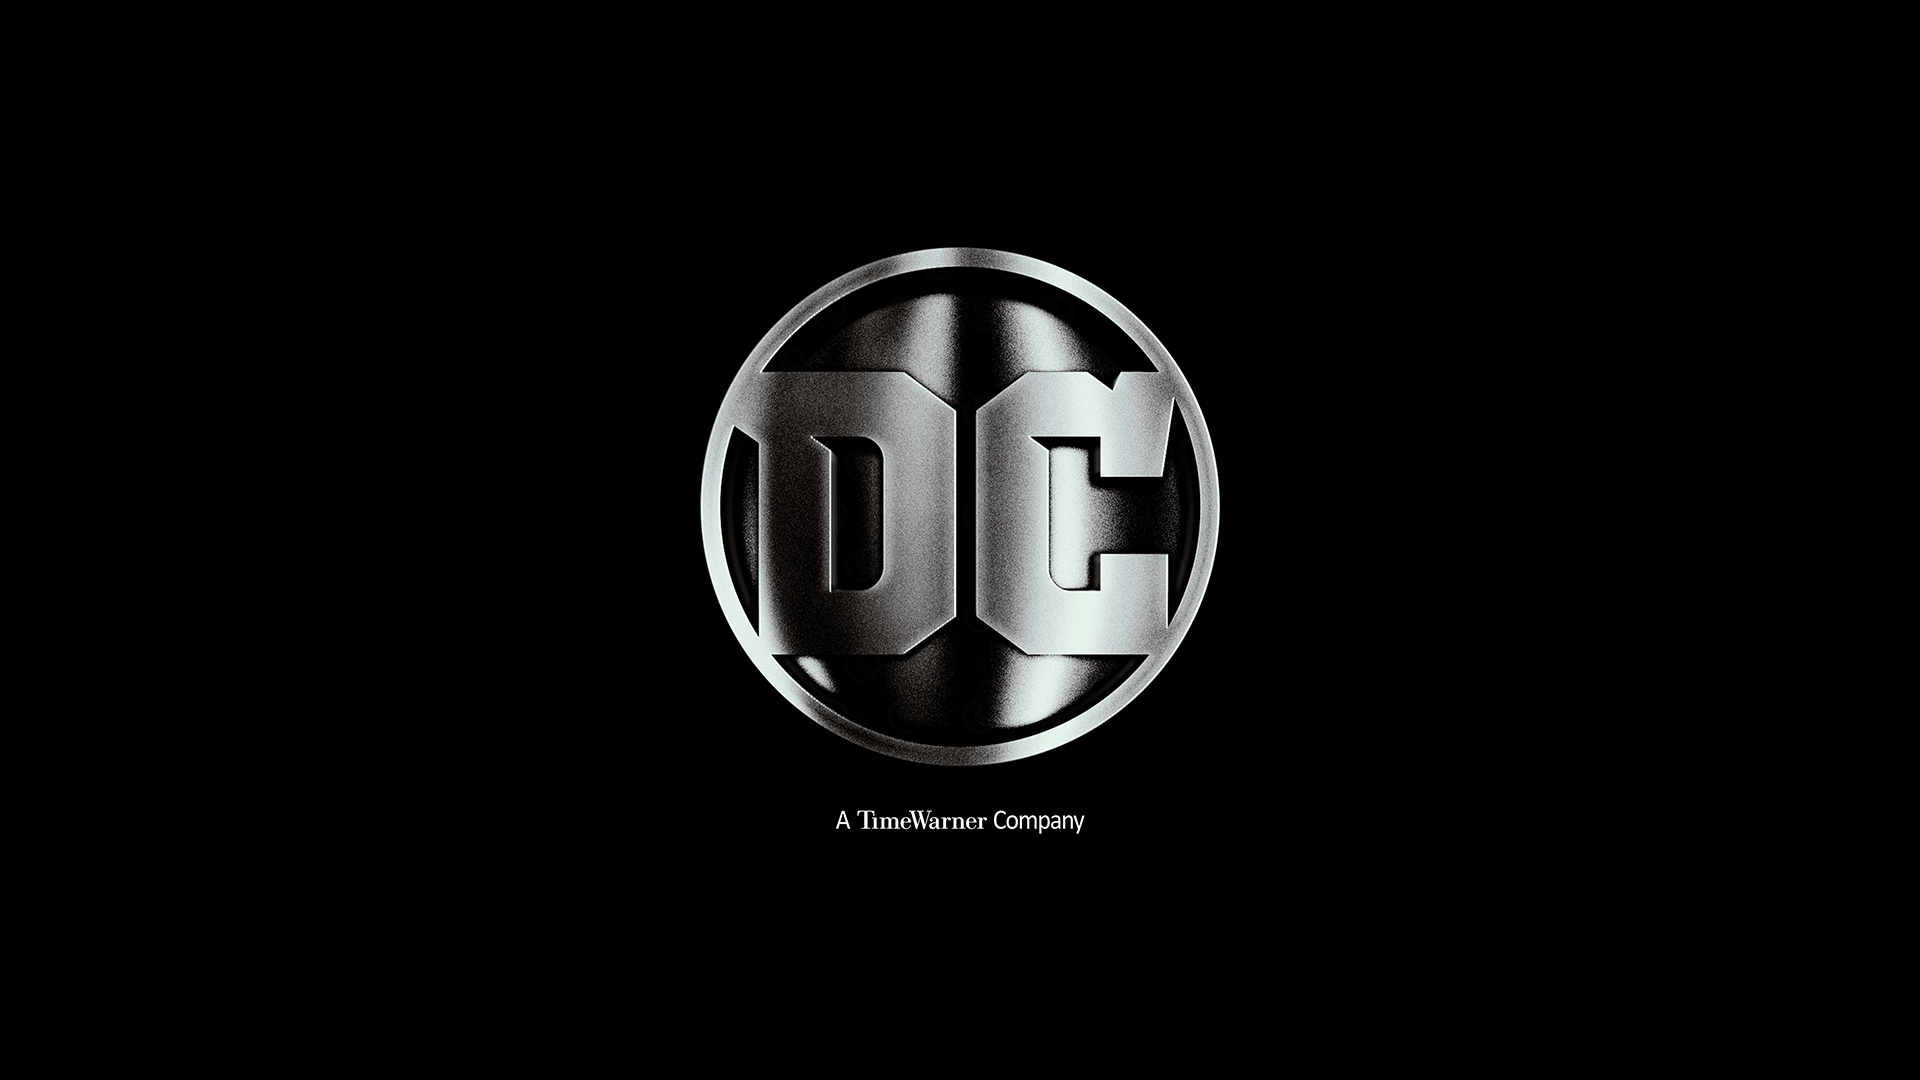 dc comics full hd wallpaper and background image | 1920x1080 | id:763331